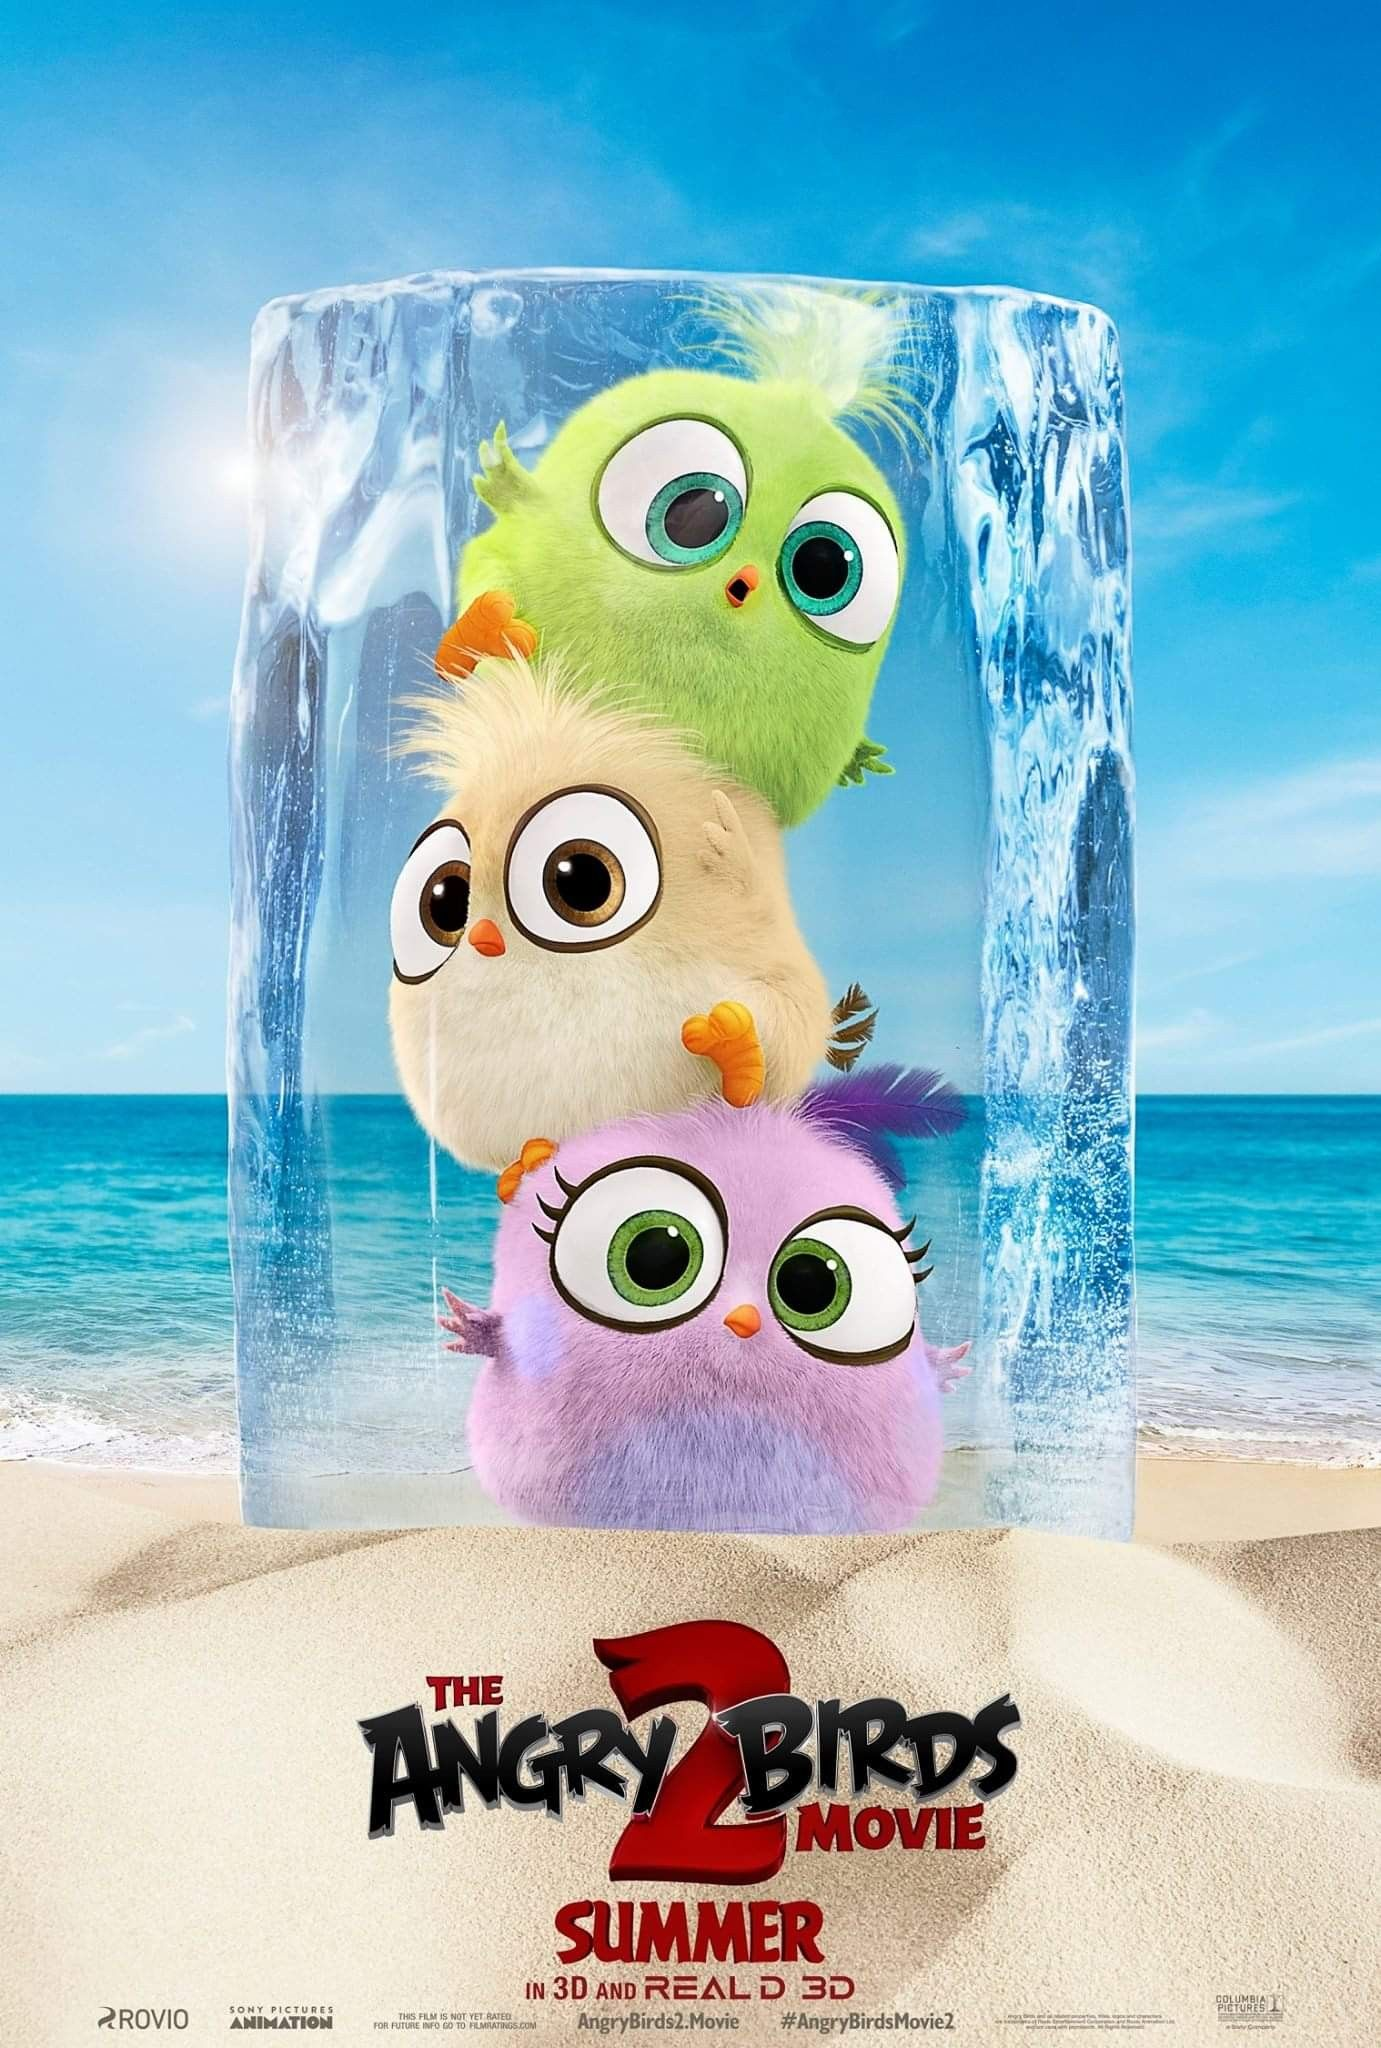 The Angry Bird 2 movie #summer | Meet the Cast | Angry birds